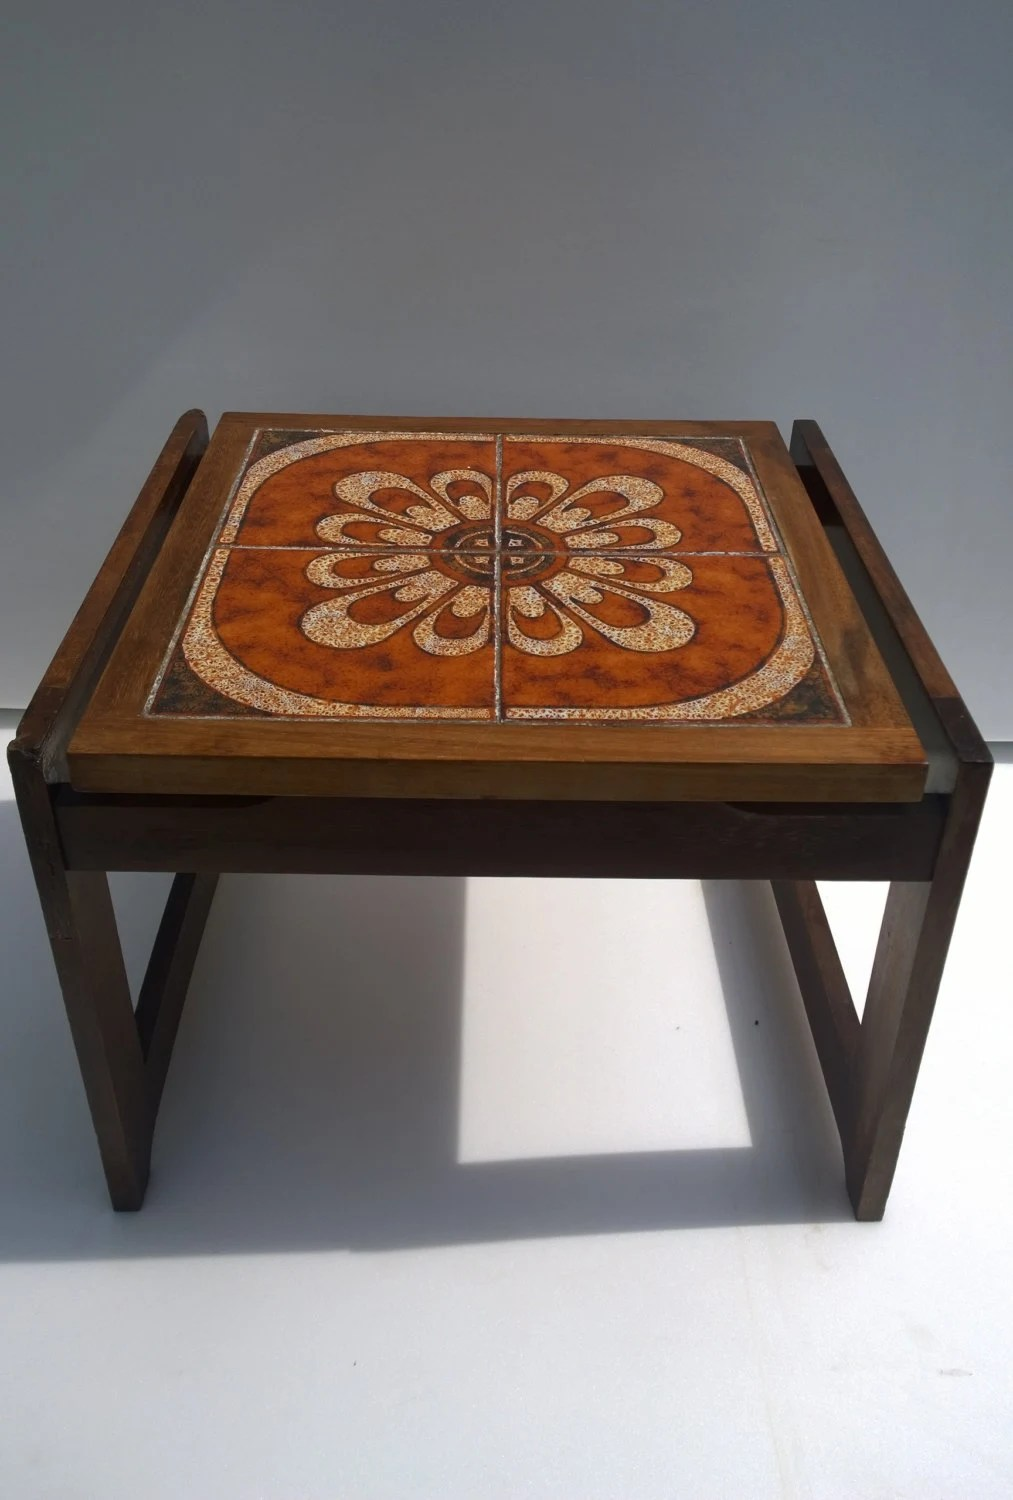 Vintage Retro 70s Tile Top Table Side Coffee End Table